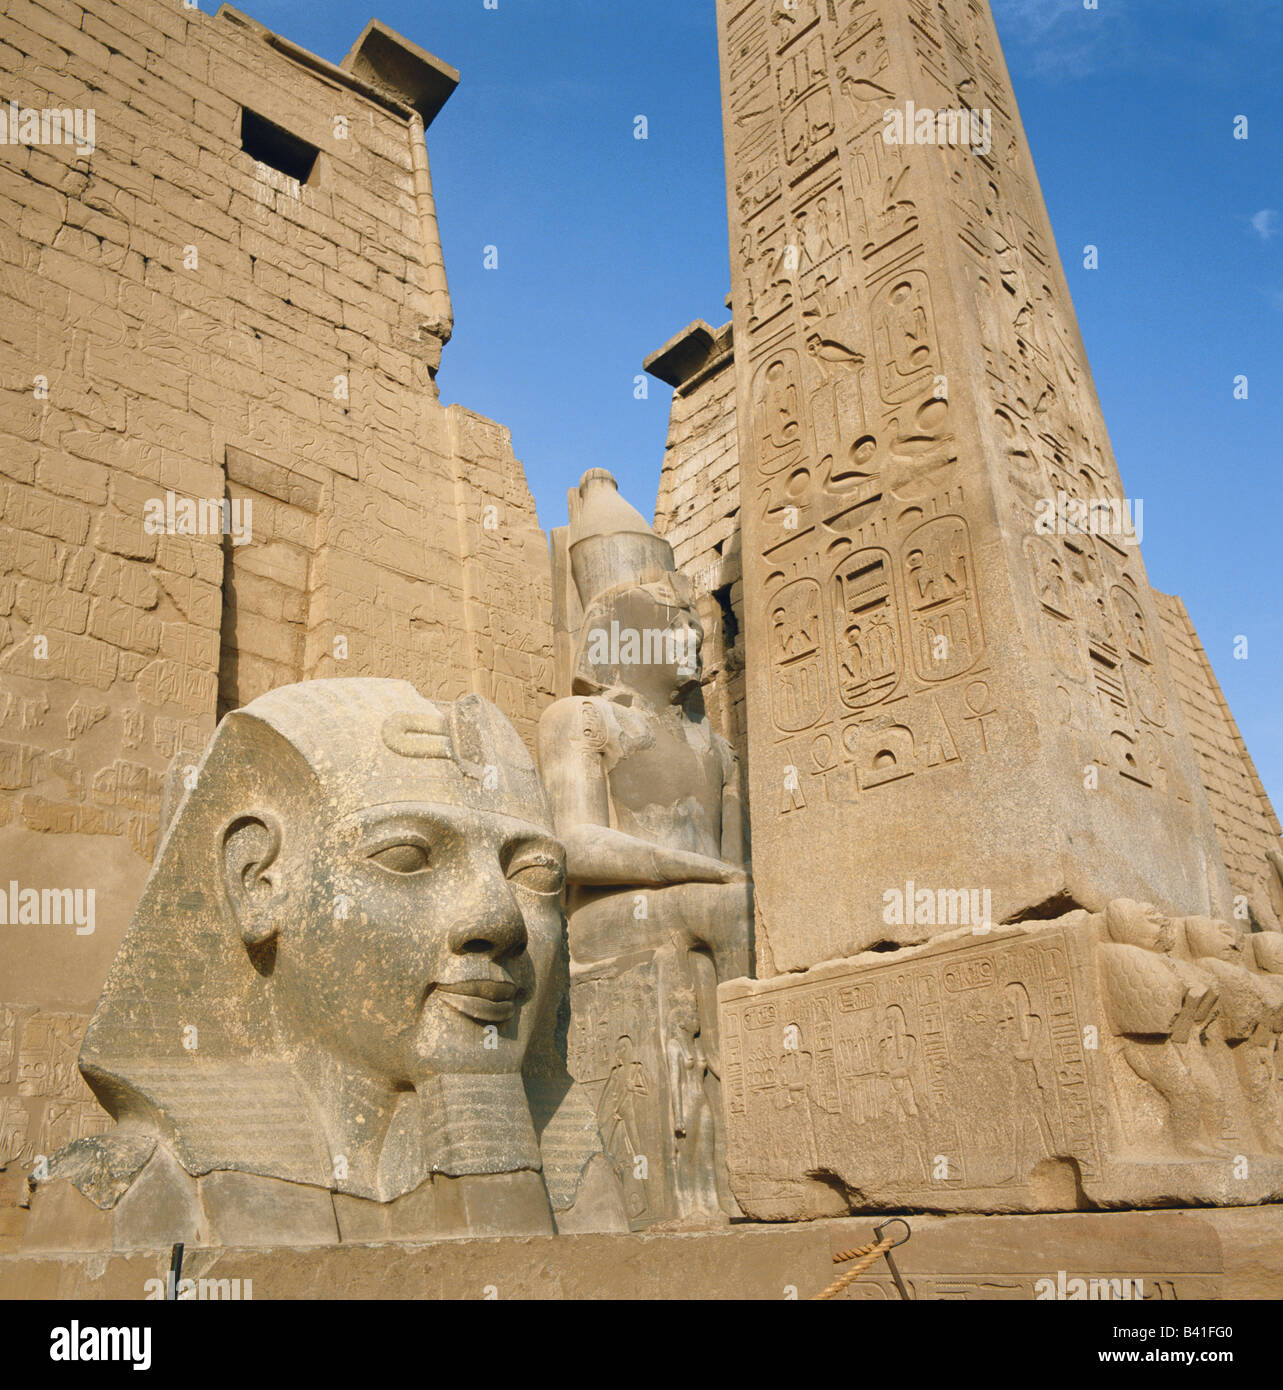 Luxor colossal head statue and obelisk at the Temple of Luxor, Egypt, Nile Valley, North Africa Stock Photo